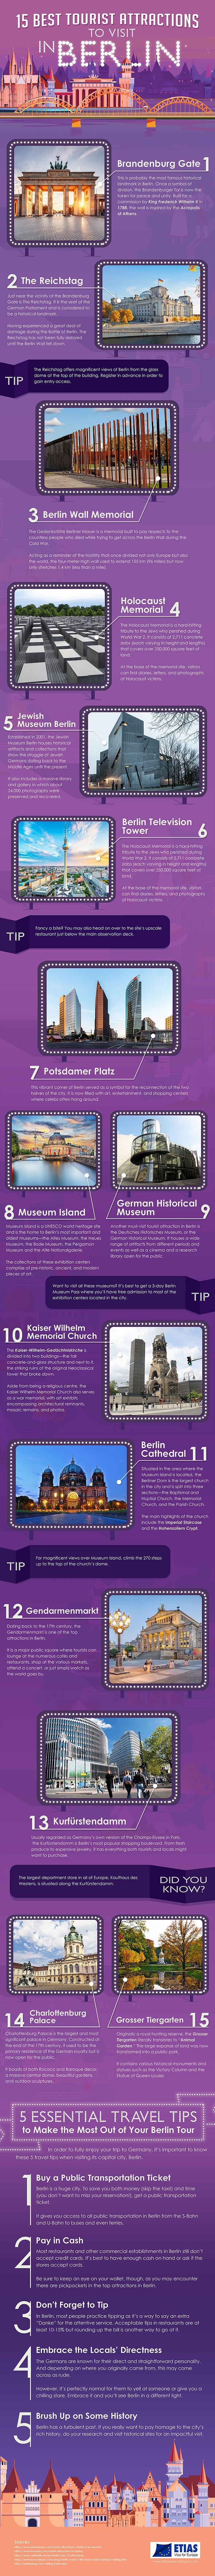 15 Top Attractions in Berlin for Your Next Trip to Germany Infographic